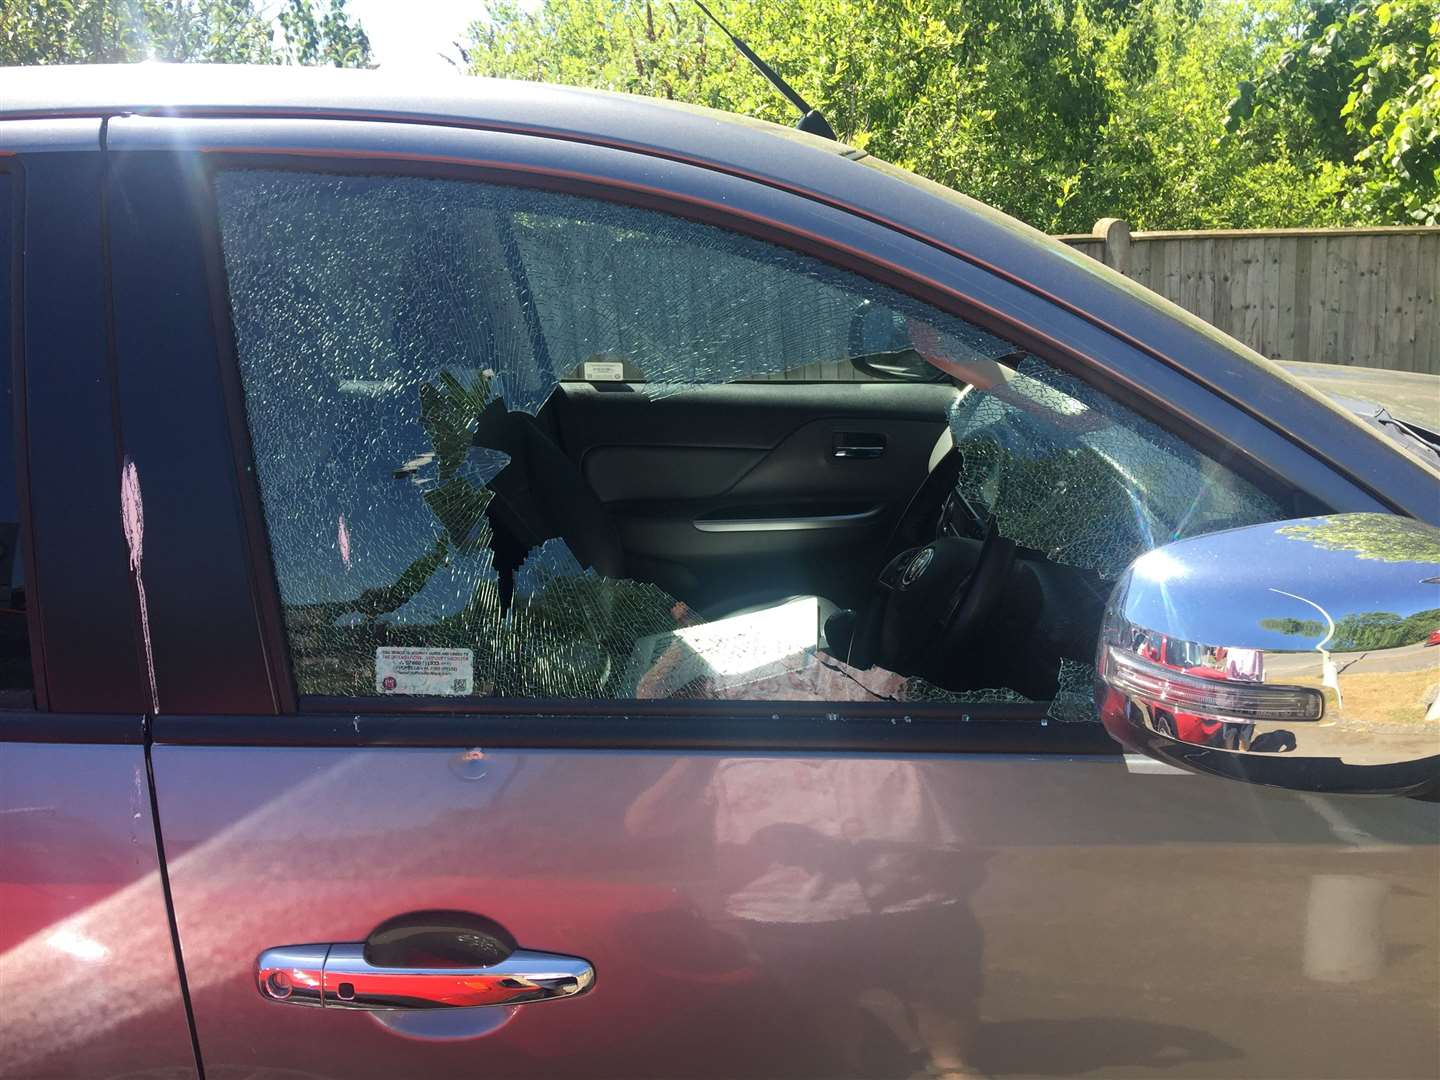 Three vehicles were damaged over the two nights of attacks